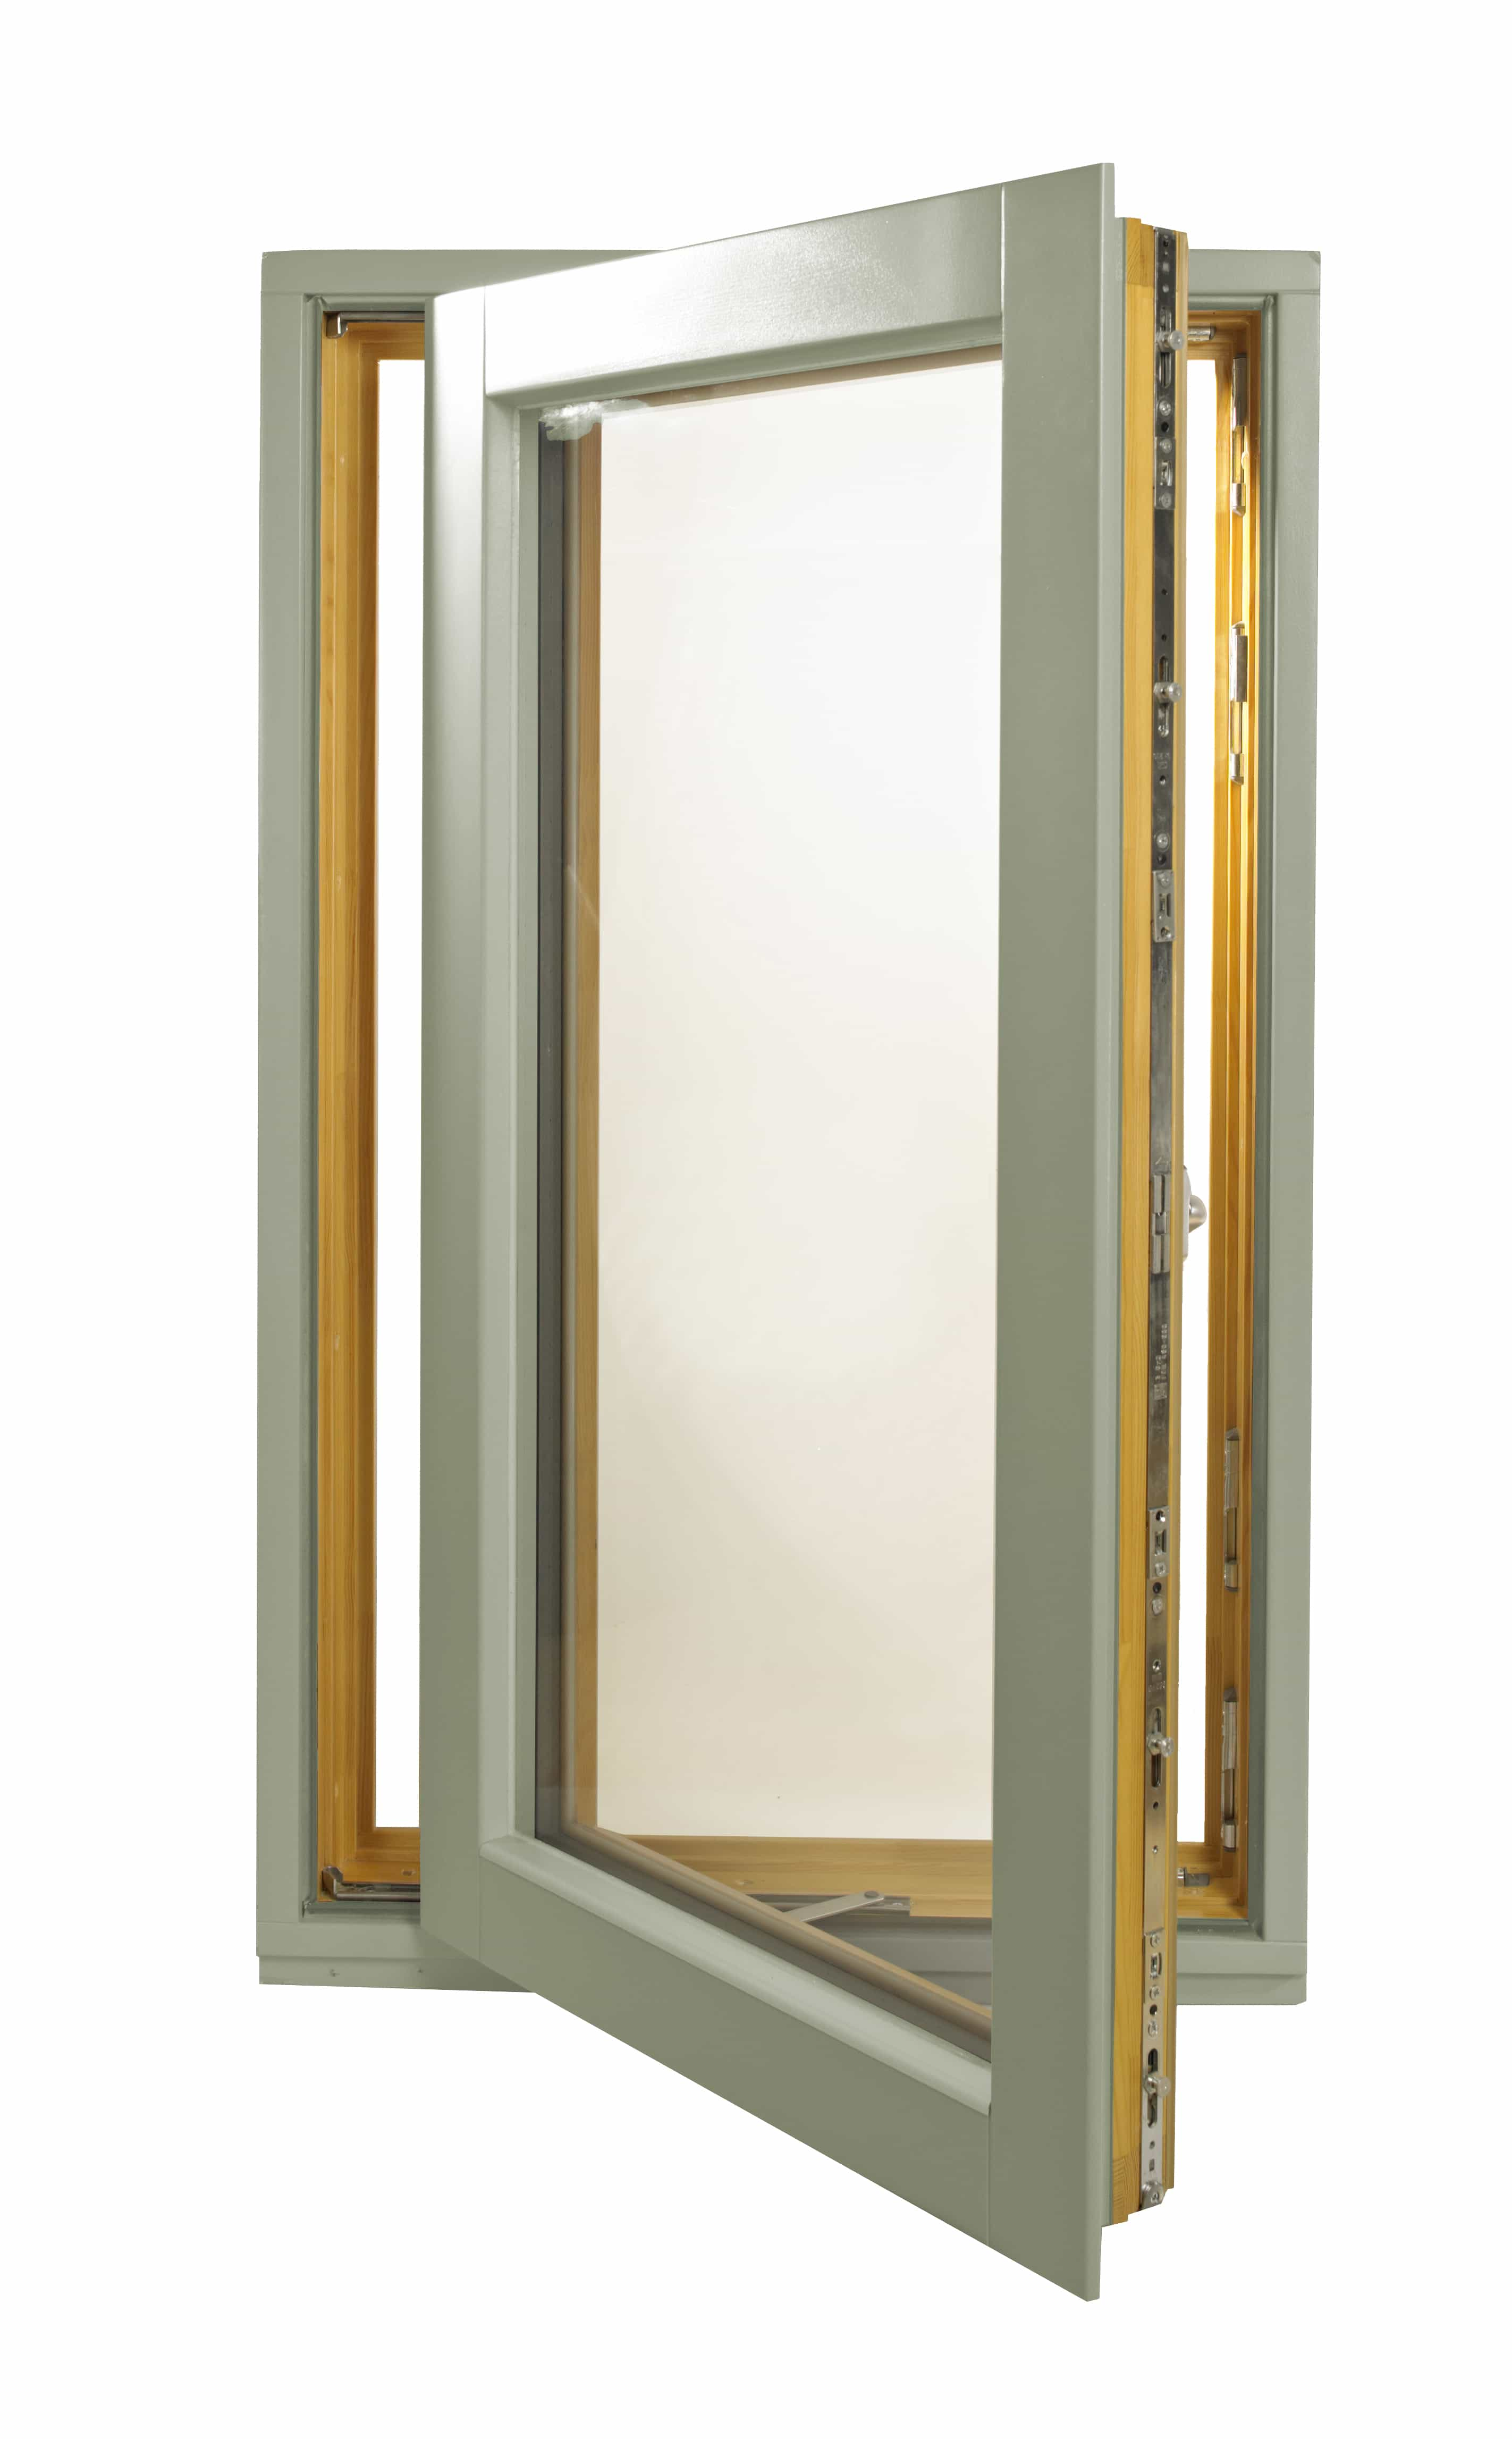 PERFORMANCE outward opening casement window